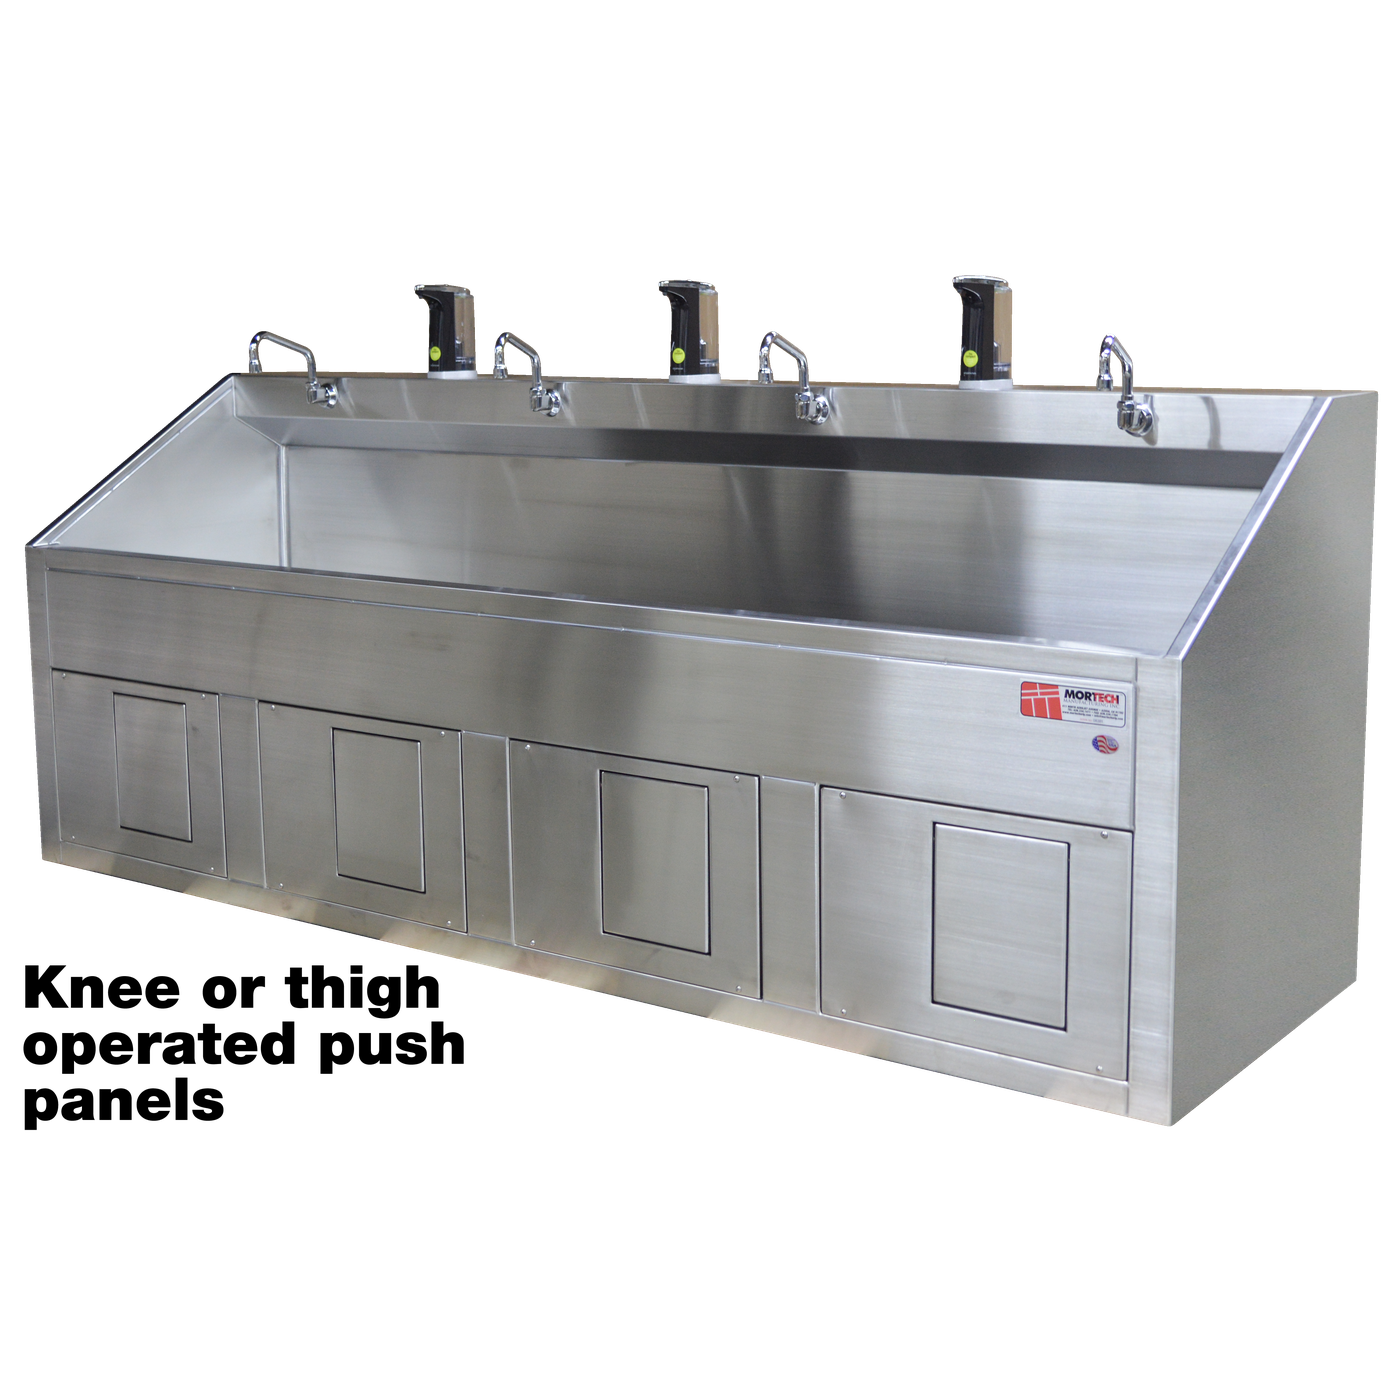 Quadruple Scrub Station-Sink Station-Mortech Manufacturing Company Inc. Quality Stainless Steel Autopsy, Morgue, Funeral Home, Necropsy, Veterinary / Anatomy, Dissection Equipment and Accessories